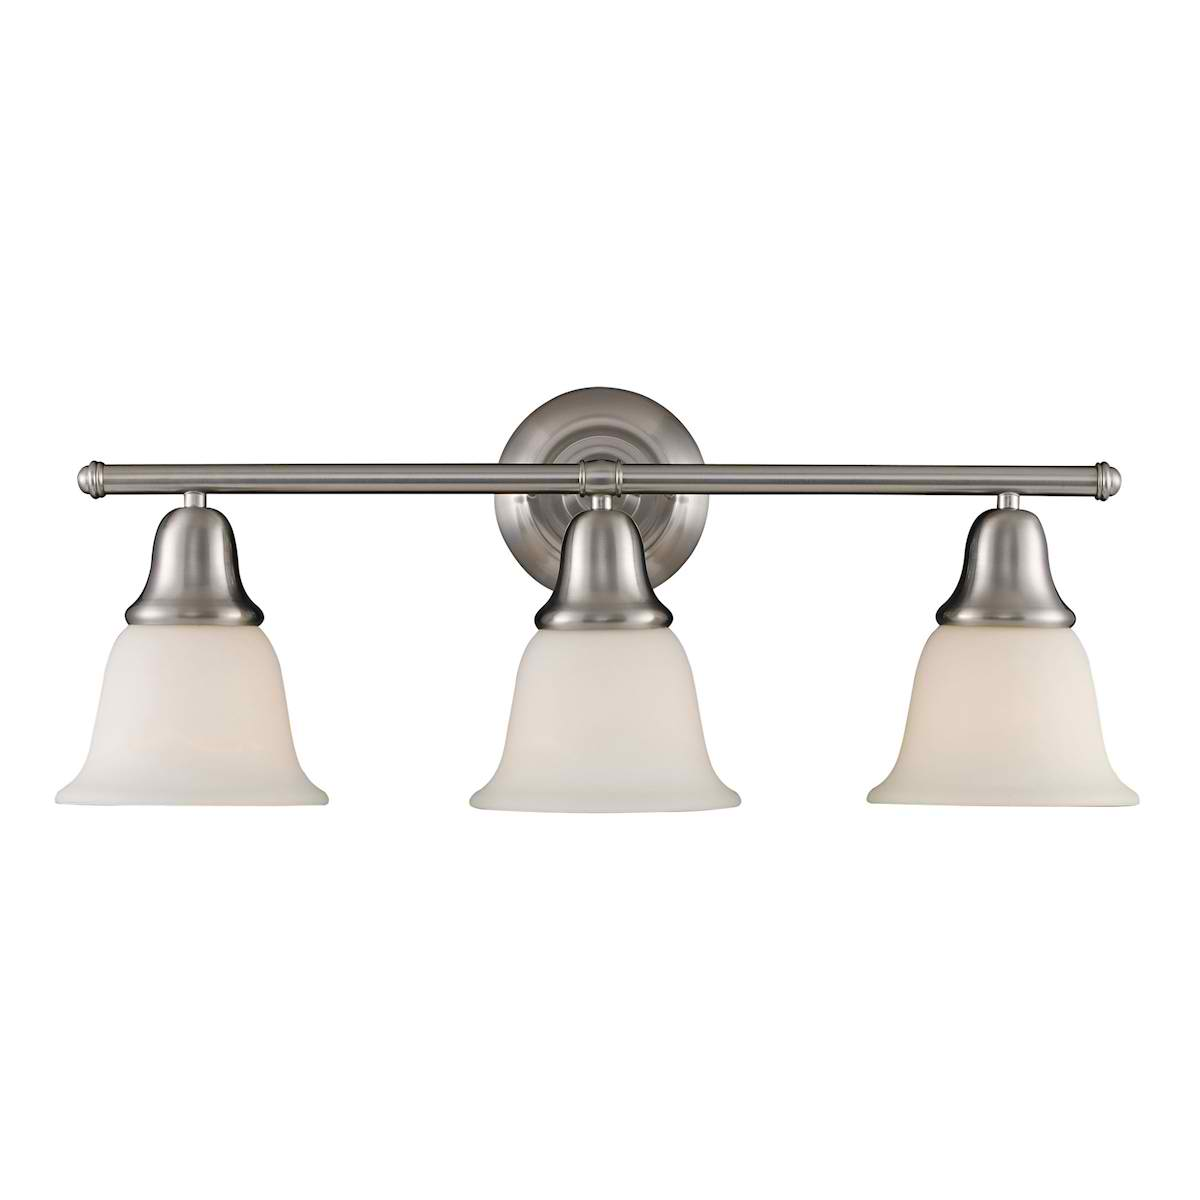 Berwick 3-Light Sconce in Brushed Nickel